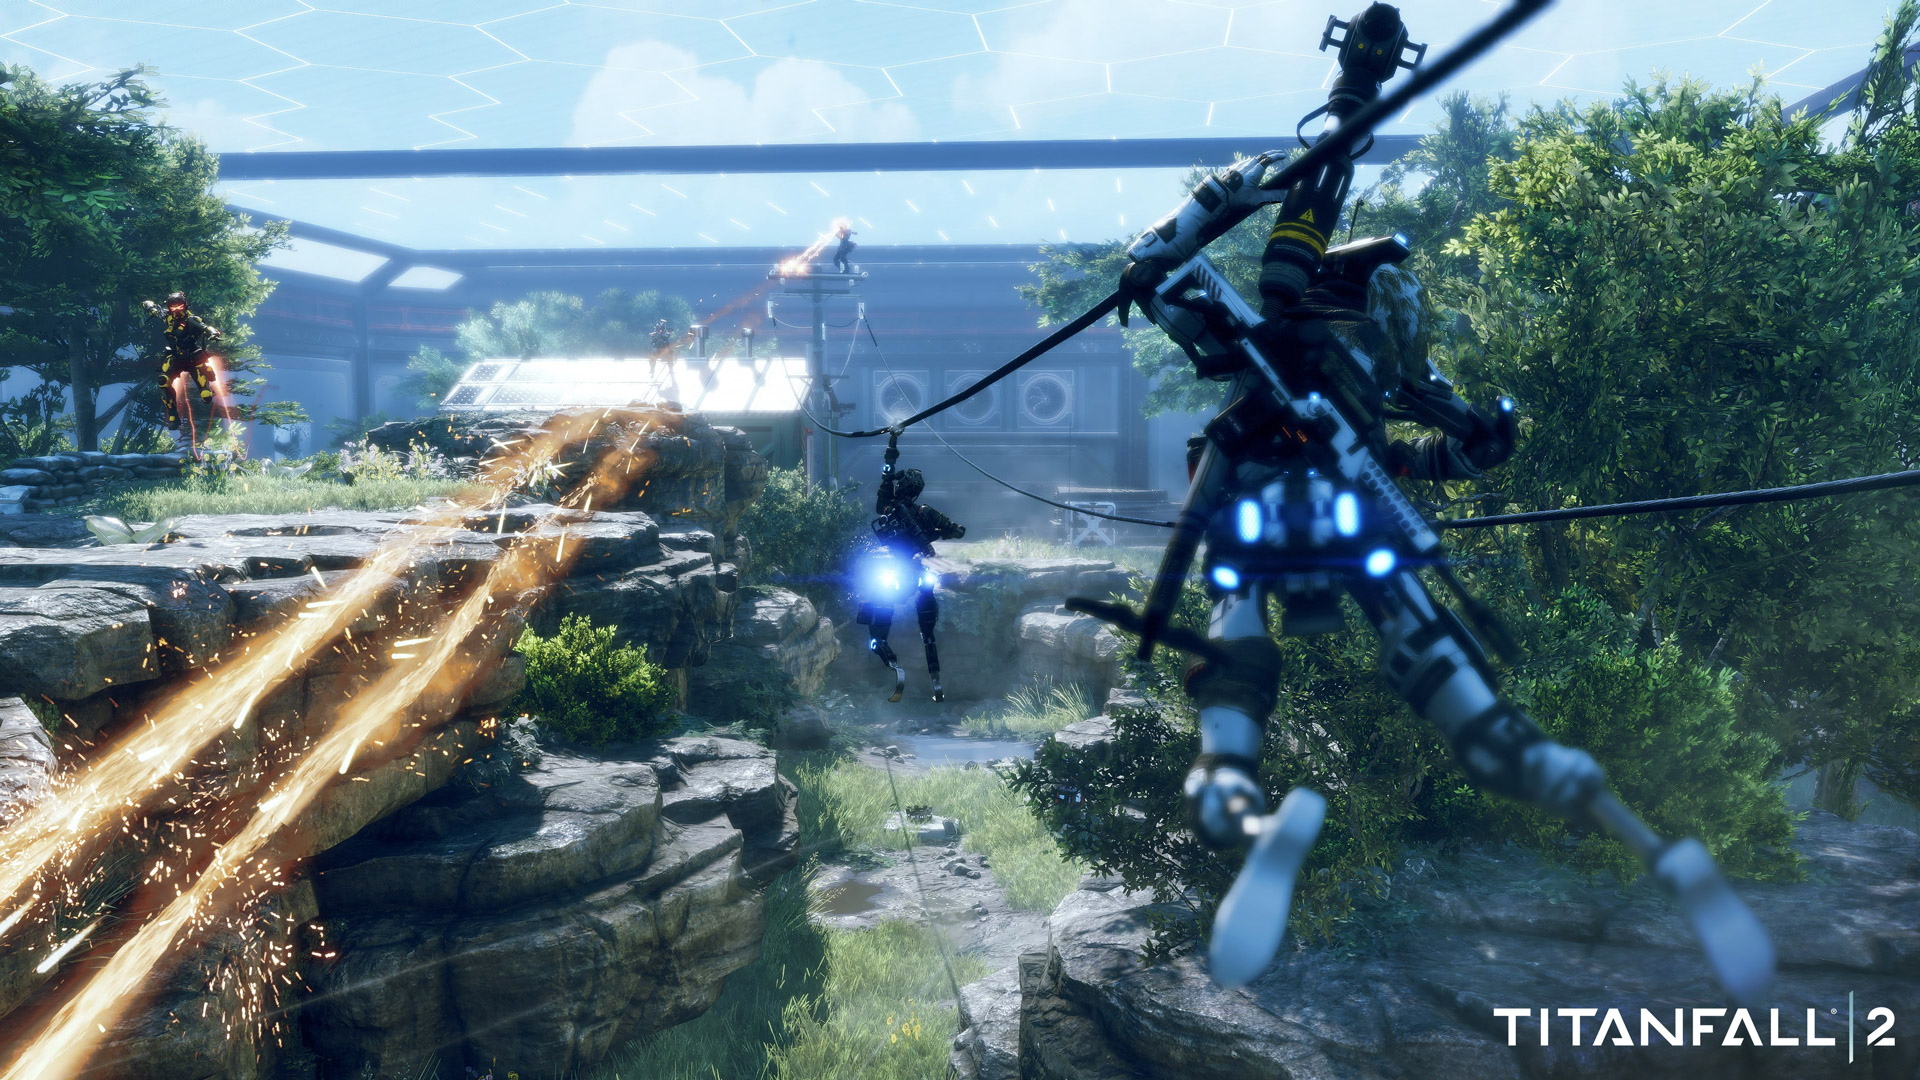 Respawn Has More Free DLC Releasing For Titanfall 2